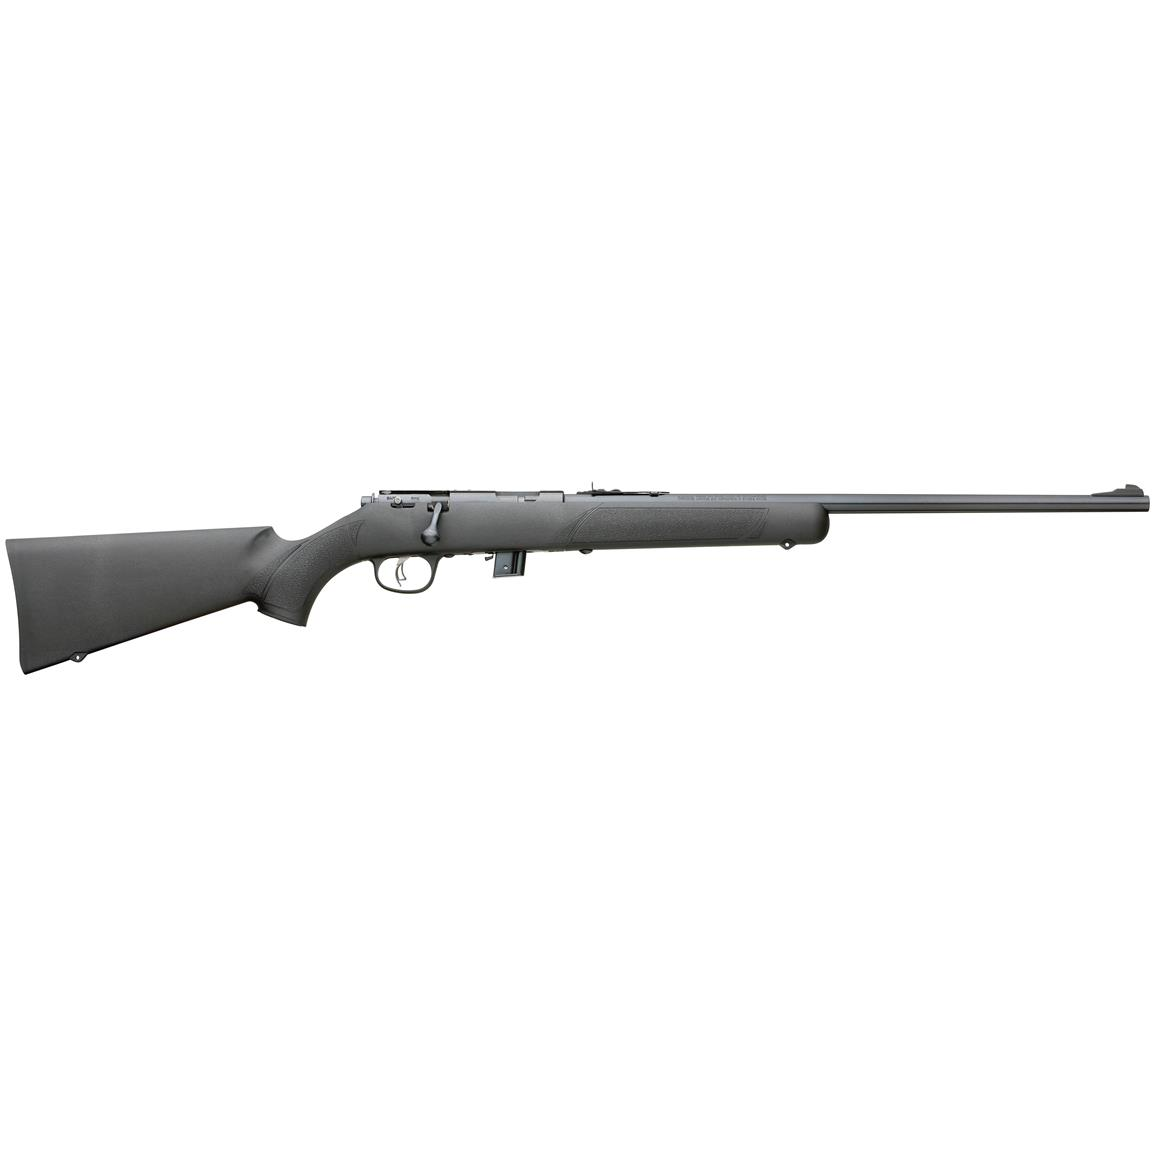 "Marlin XT-17R, Bolt Action, .17 HMR, Rimfire, 22"" Sporter Barrel, 7+1 Rounds"